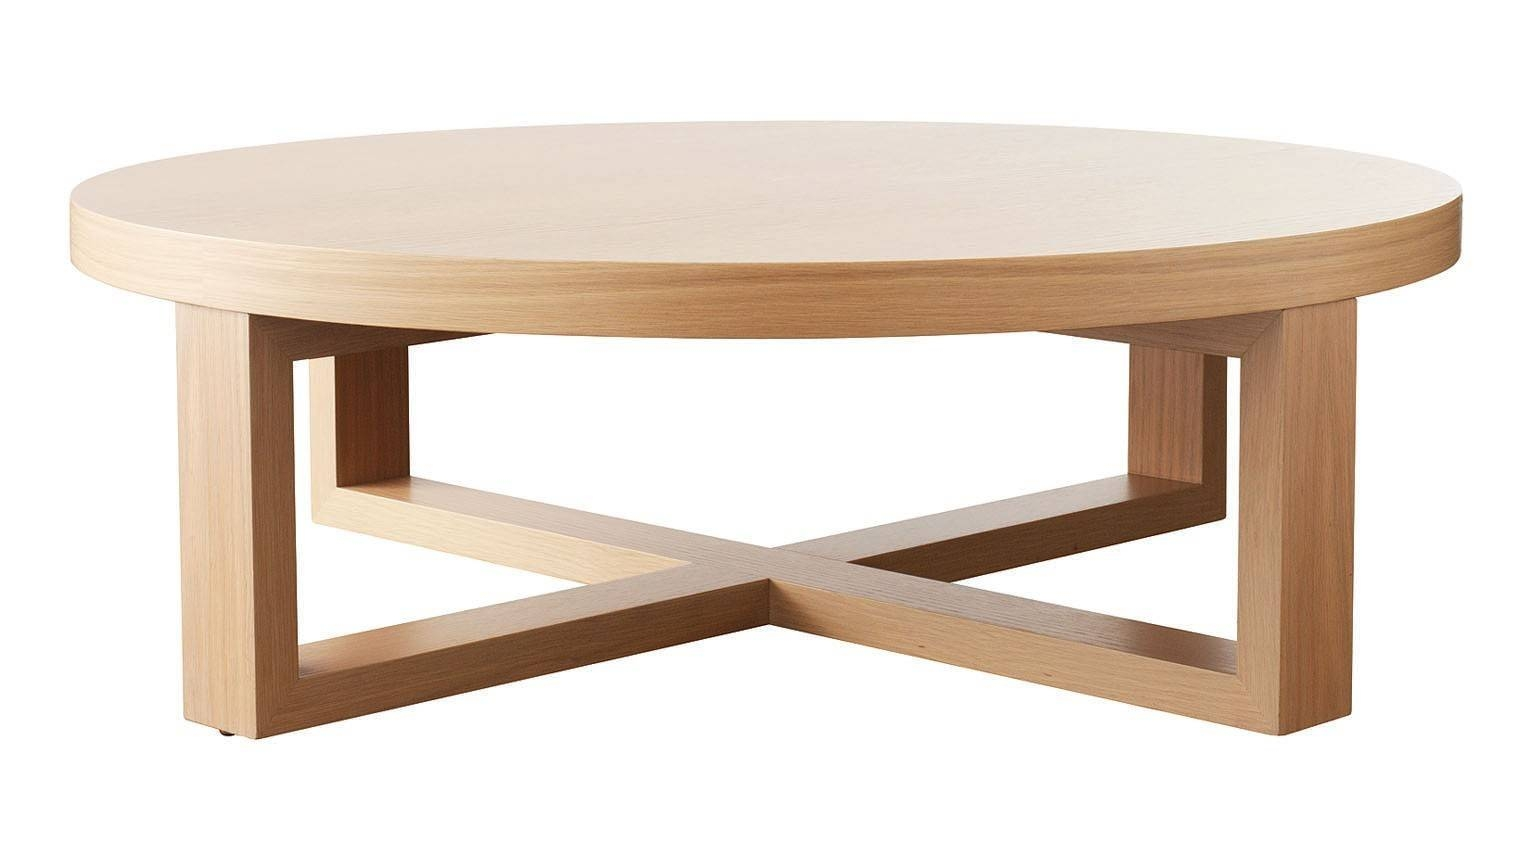 Furniture. Glamorous Round Oak Coffee Table Designs: Wonderful intended for Round Oak Coffee Tables (Image 9 of 30)